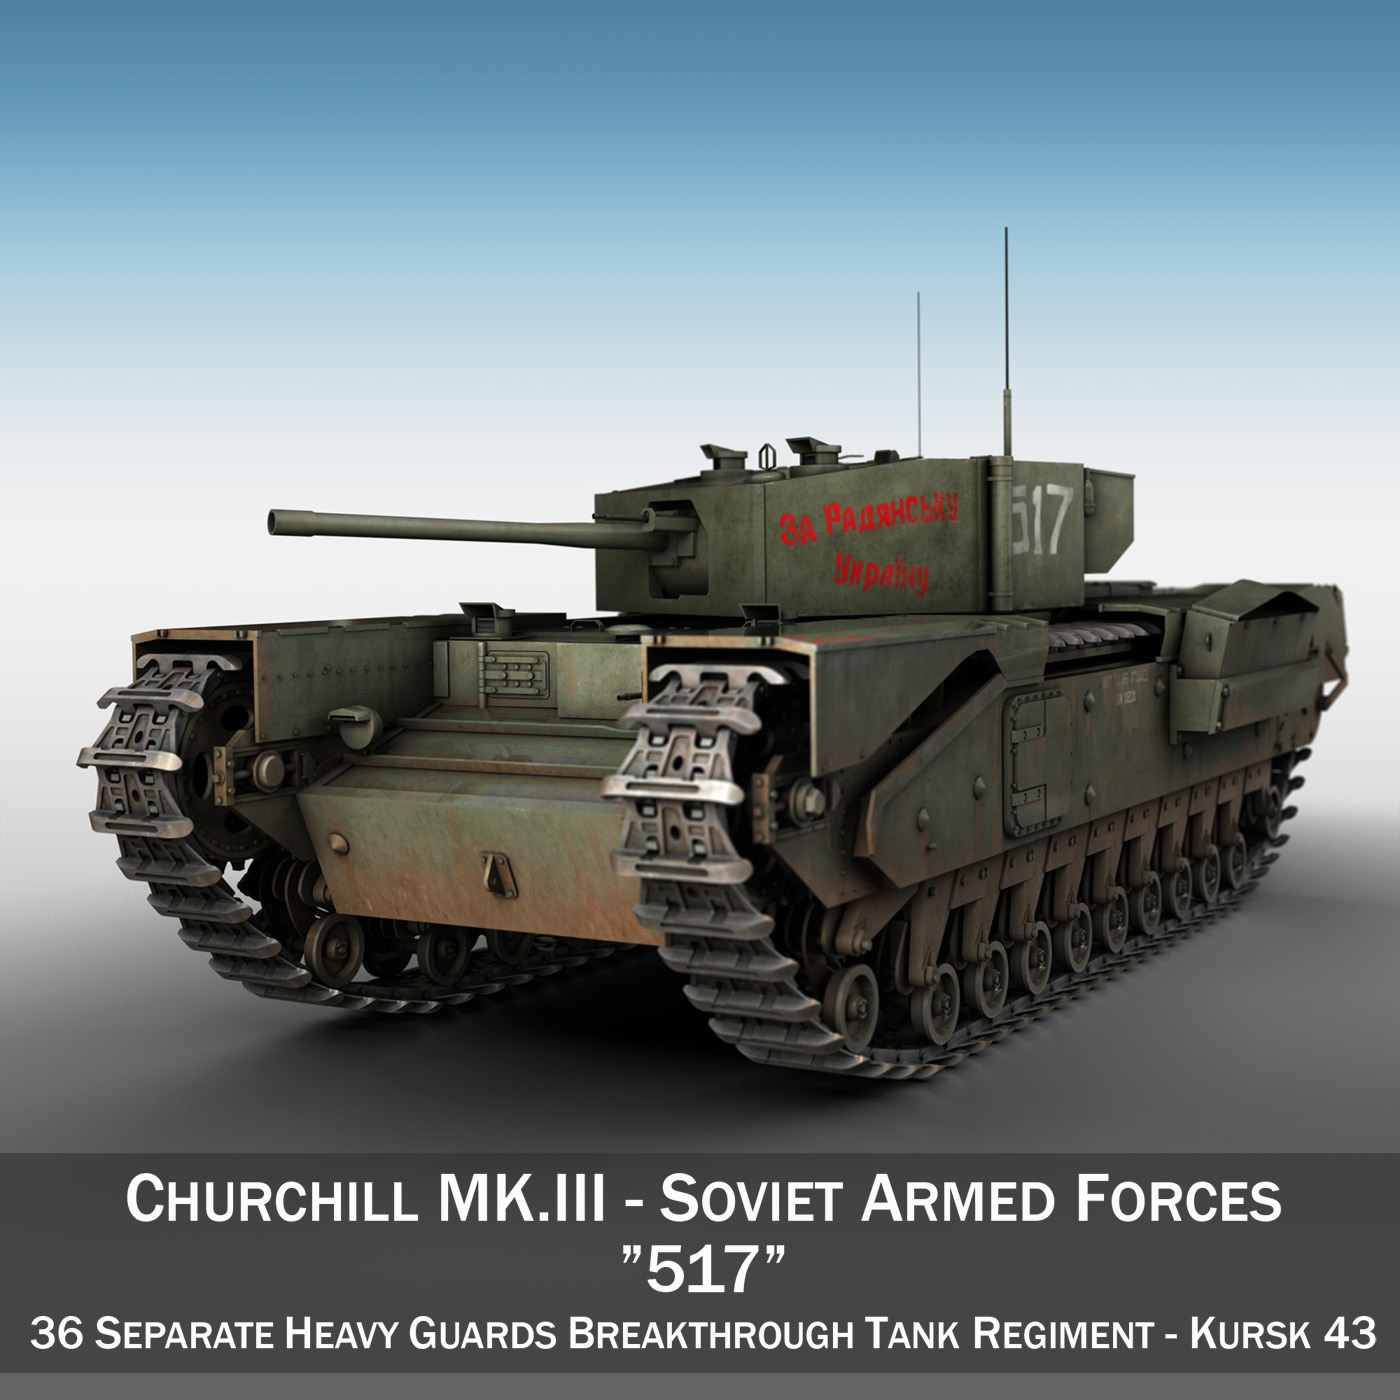 churchill mk iii - 517 - sovet ordusu 3d model 3ds fbx c4d lwo obj 272974